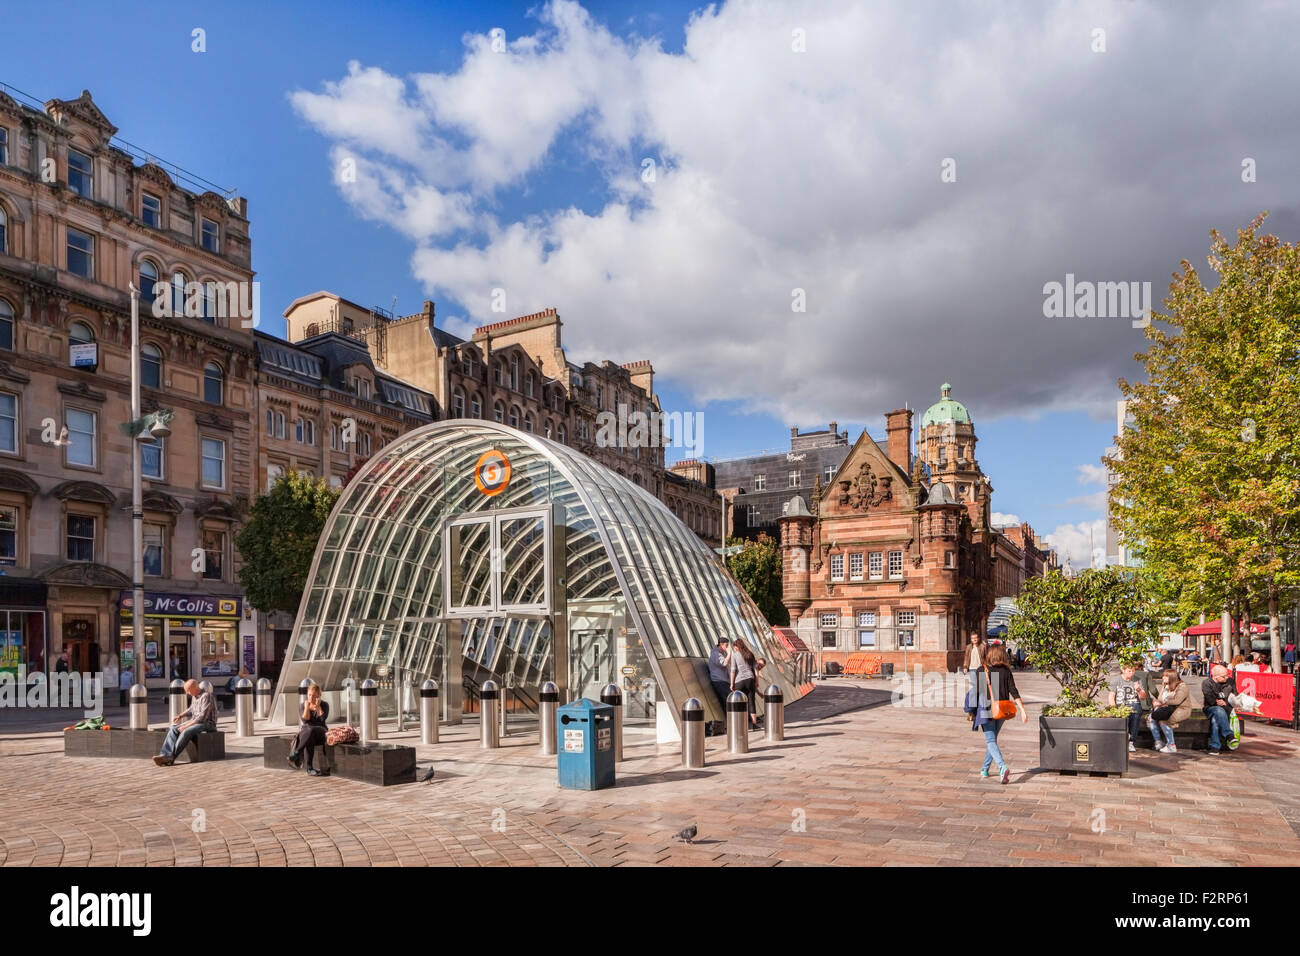 St Enoch Square, with old and new subway entrances, Glasgow, Scotland. - Stock Image